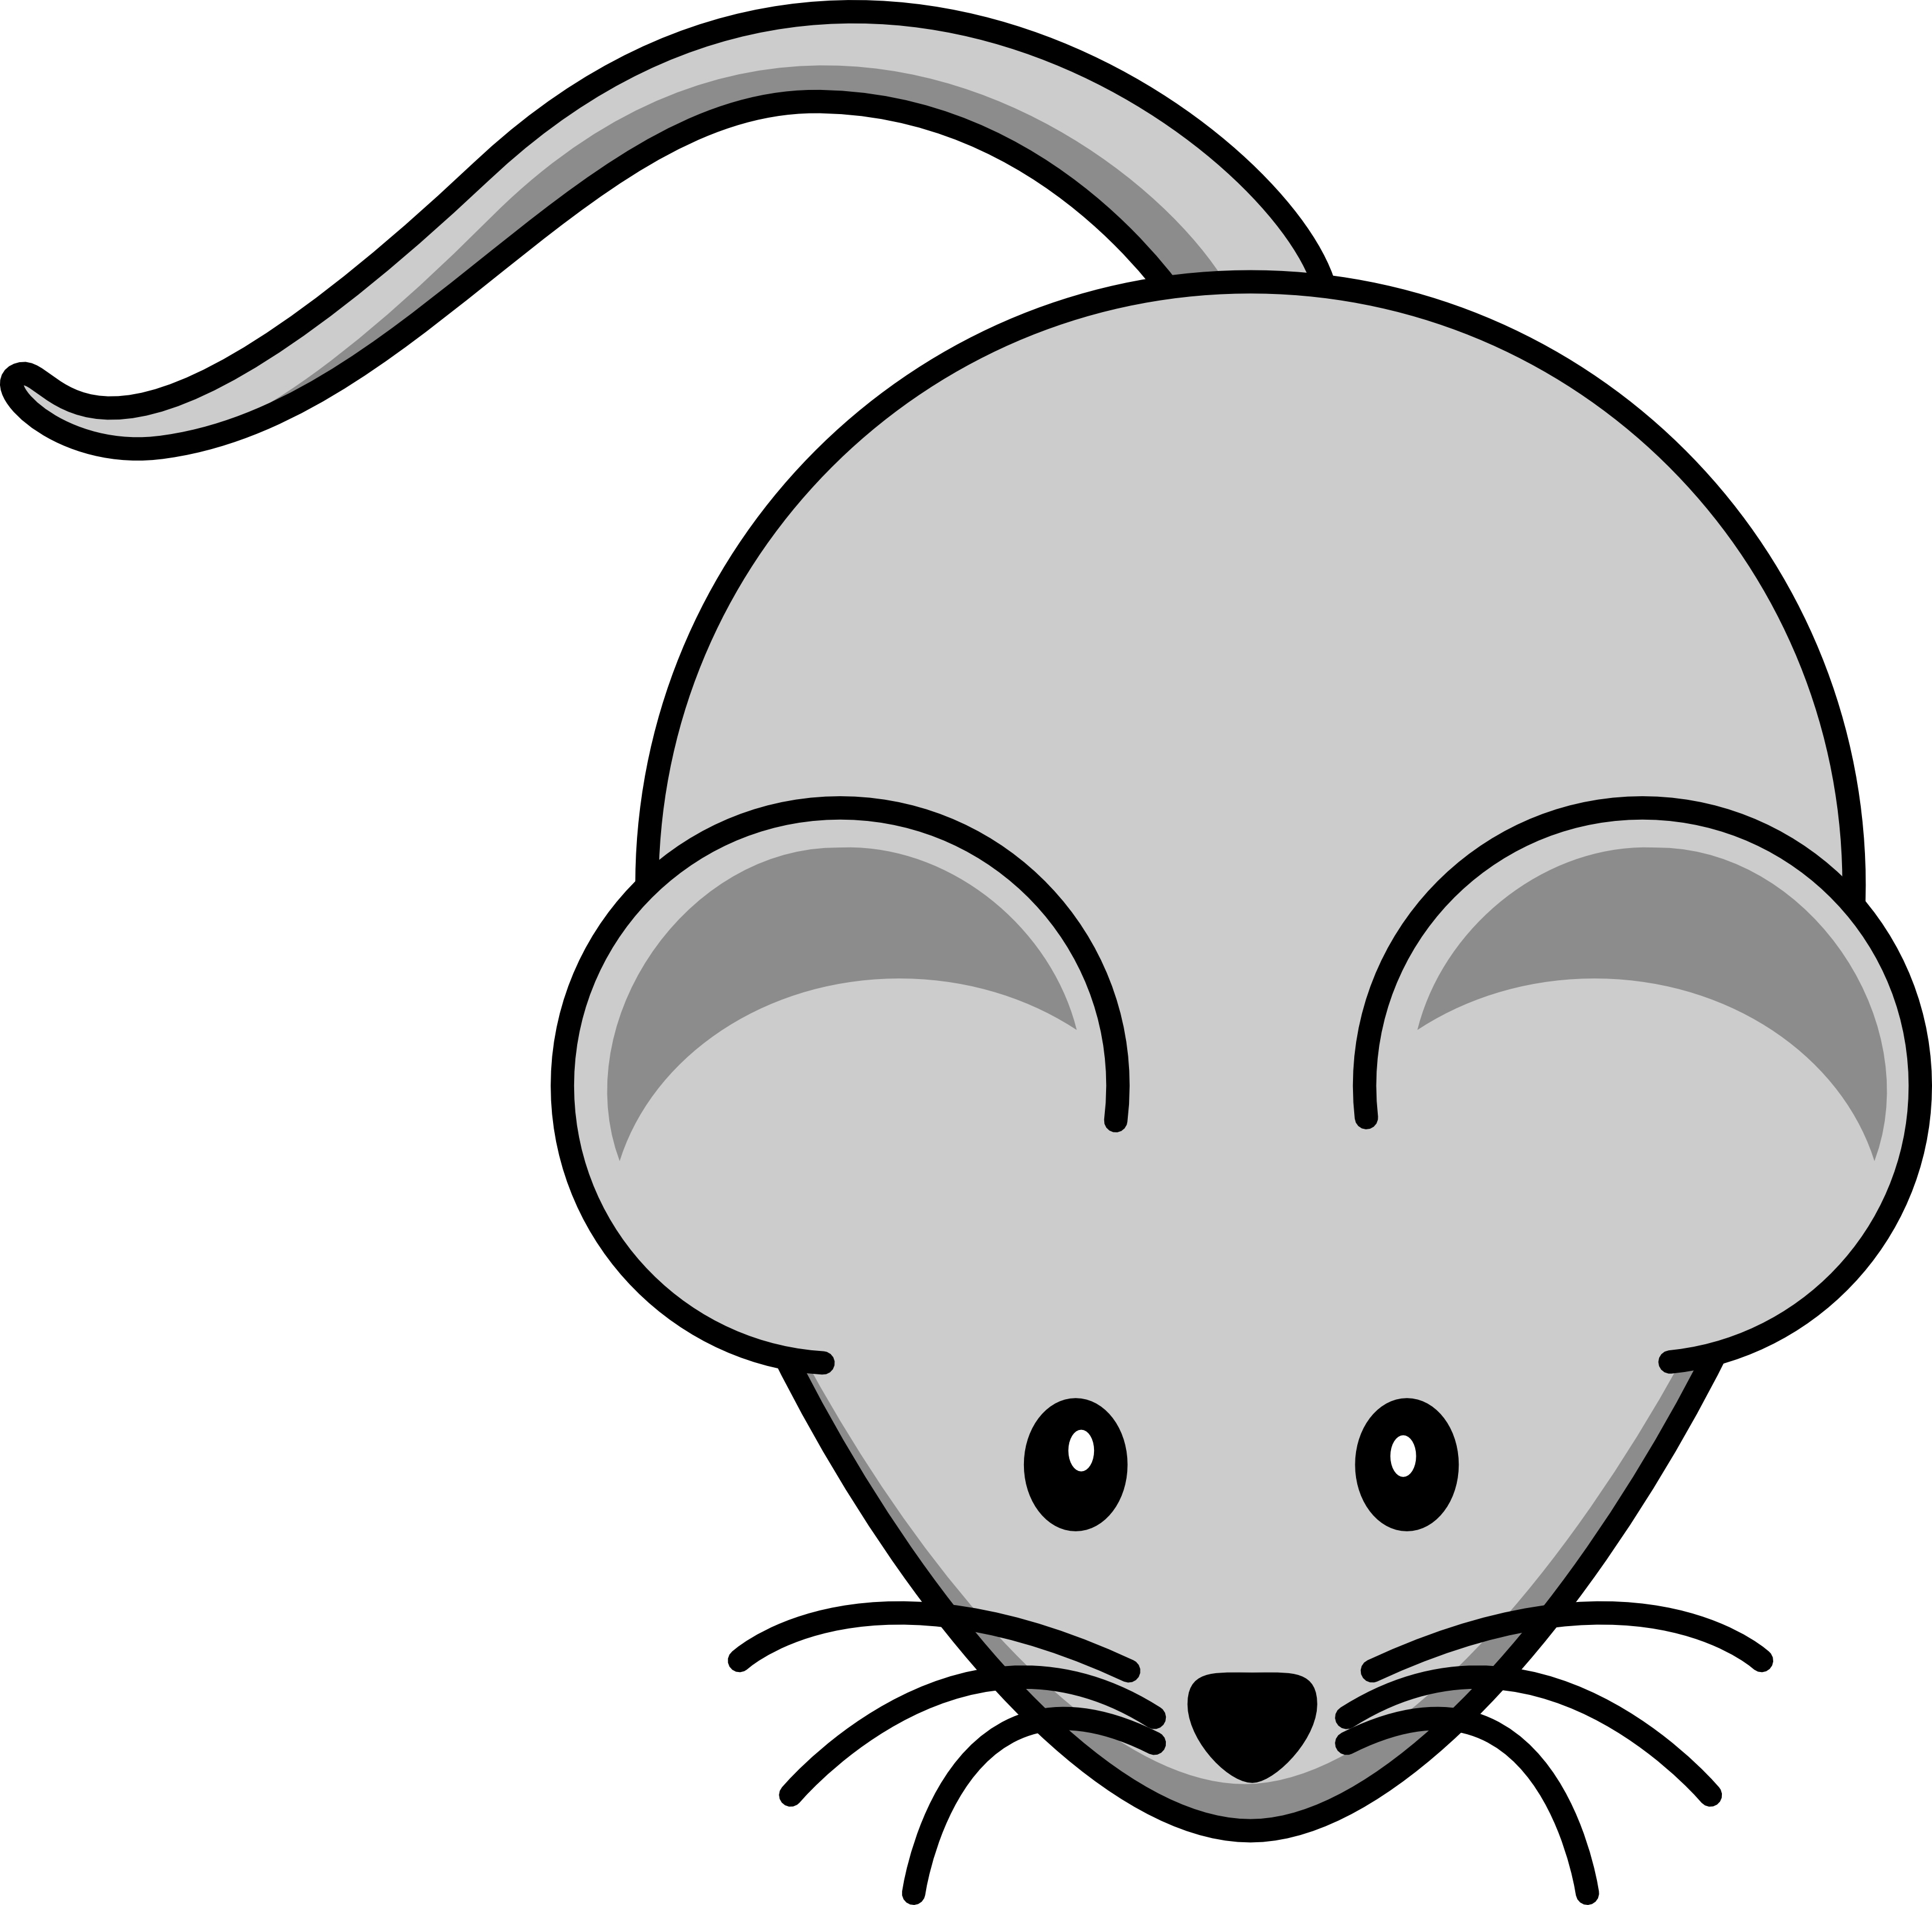 Mouse clipart #13, Download drawings